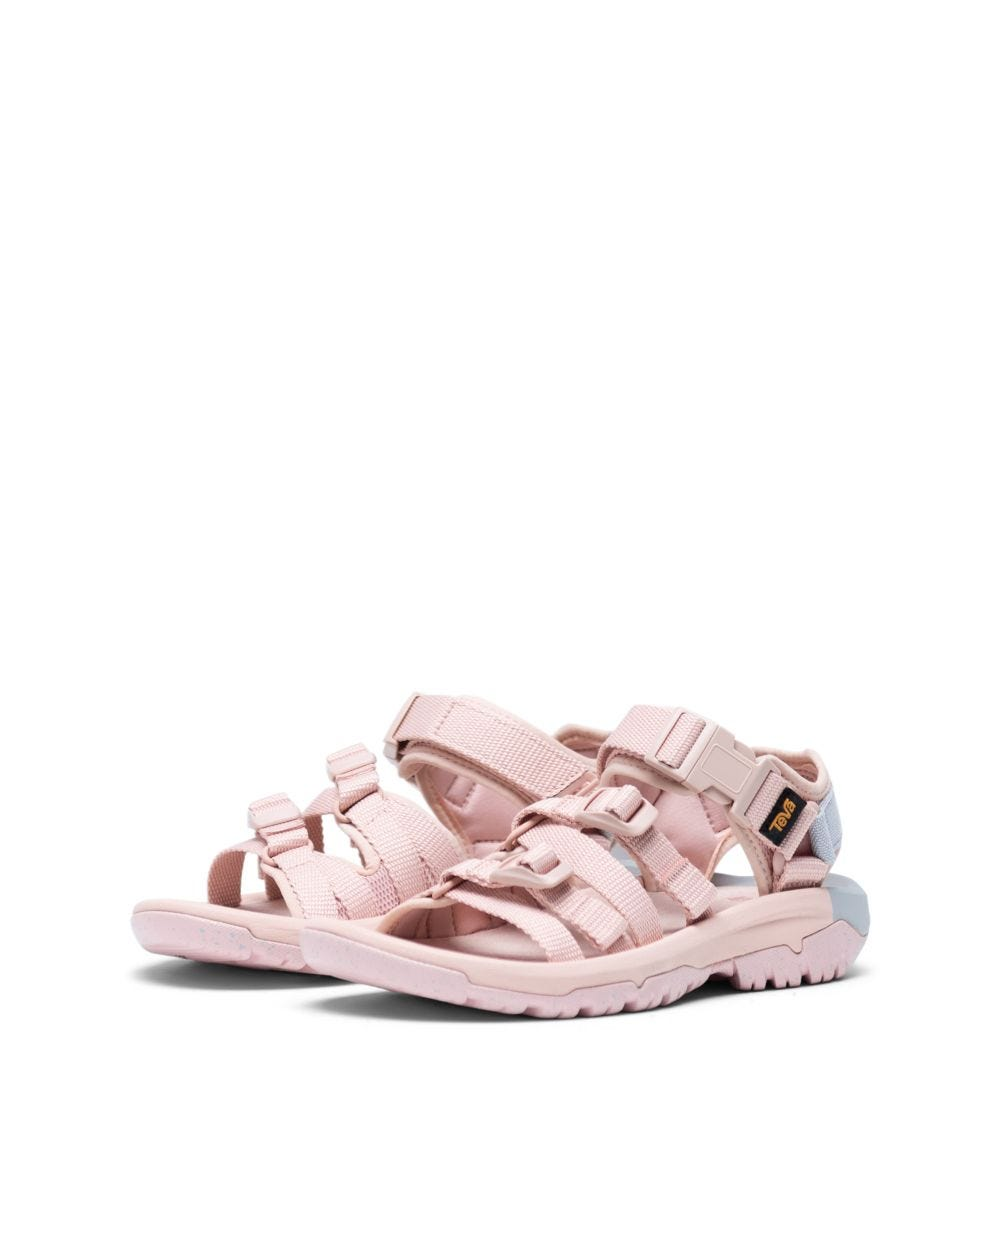 Womens Sport Are Designer Trend Teva Like A Big Sandals WIDE2Y9H